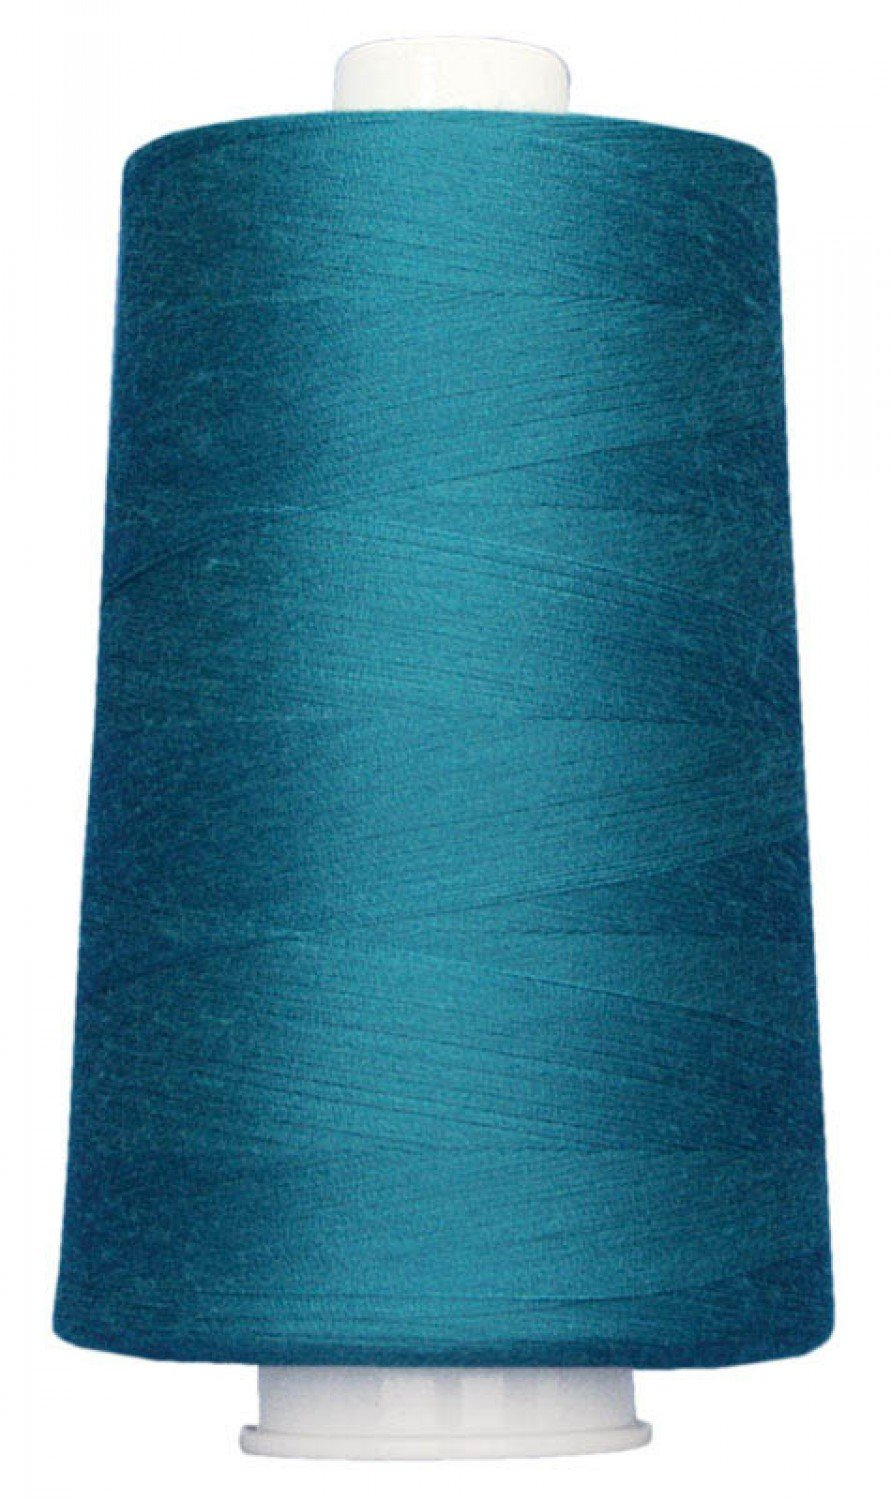 OMNI Polyester Thread 40 wt  6000 yds  3093 Blue Teal by Superior